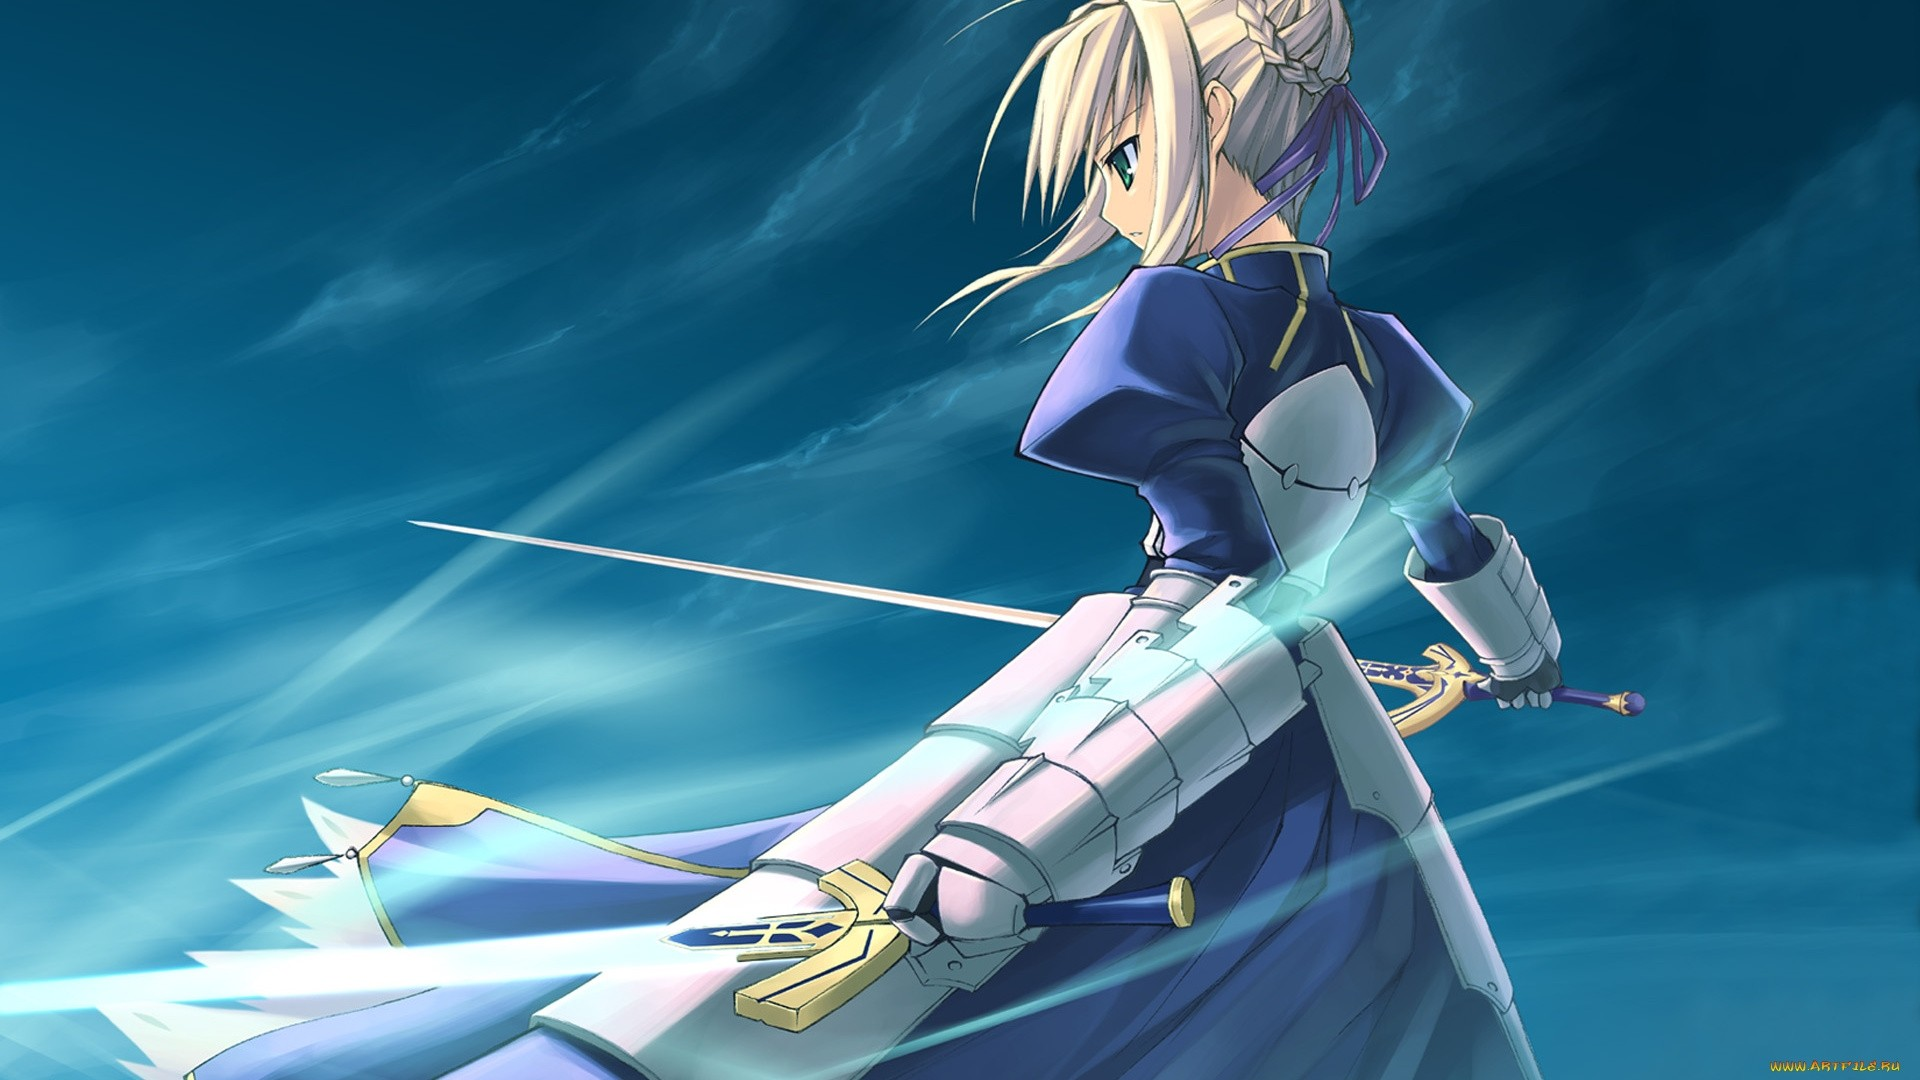 Fate Stay Night Saber Wallpaper Download Full